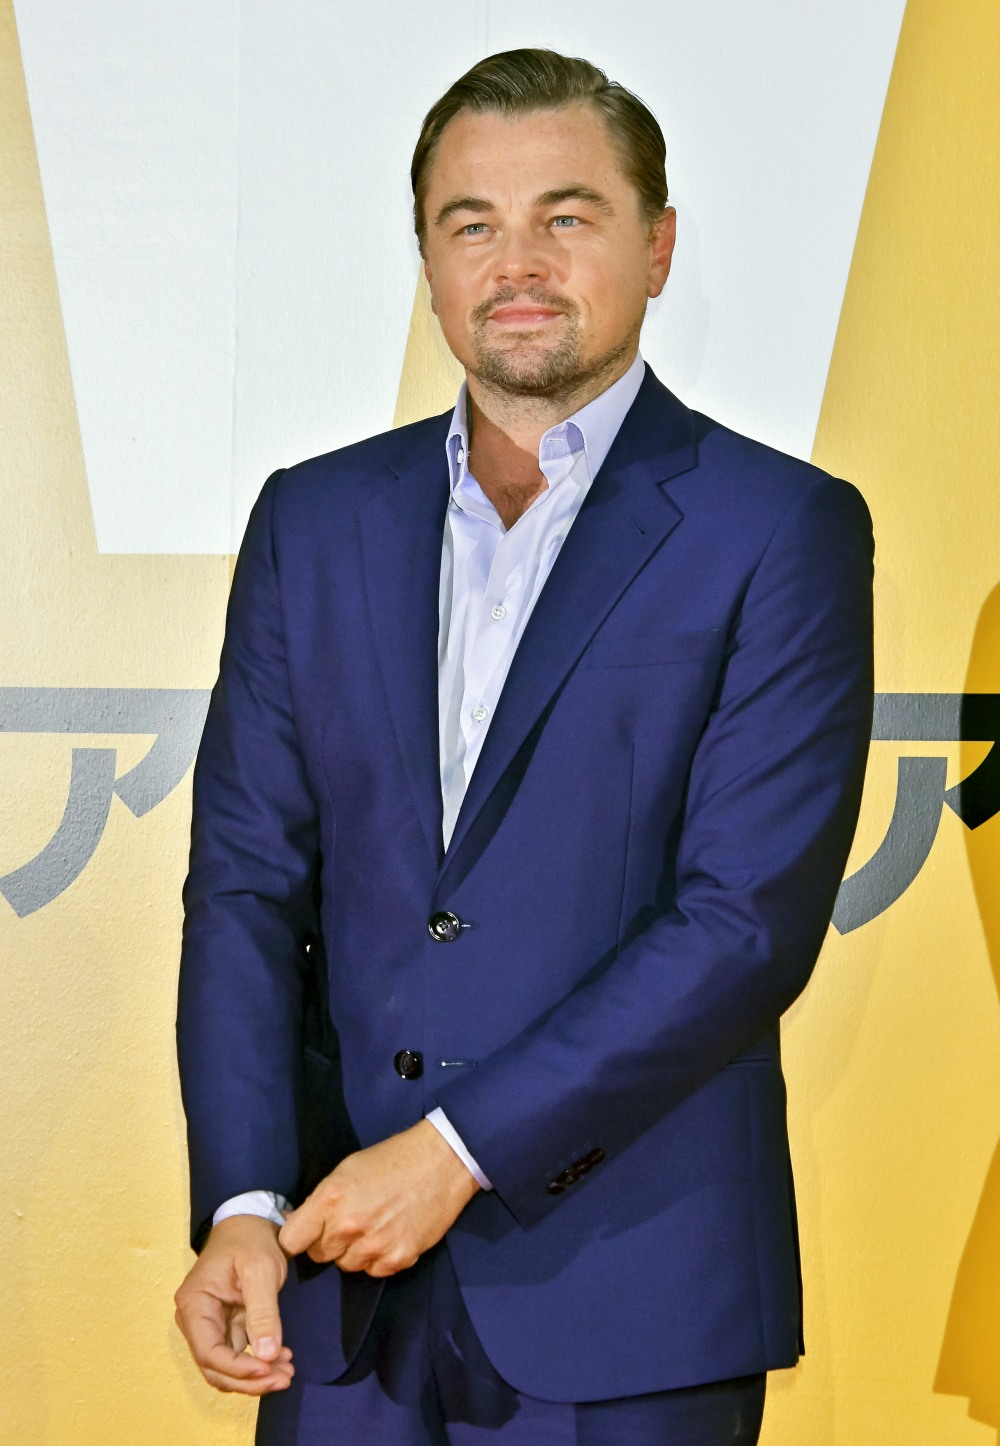 Leonardo DiCaprio at the premiere of the movie 'Once Upon a Time in ... Hollywood' at the Tokyo Midtown Hibiya. Tokyo, 26.08.2019 | usage worldwide